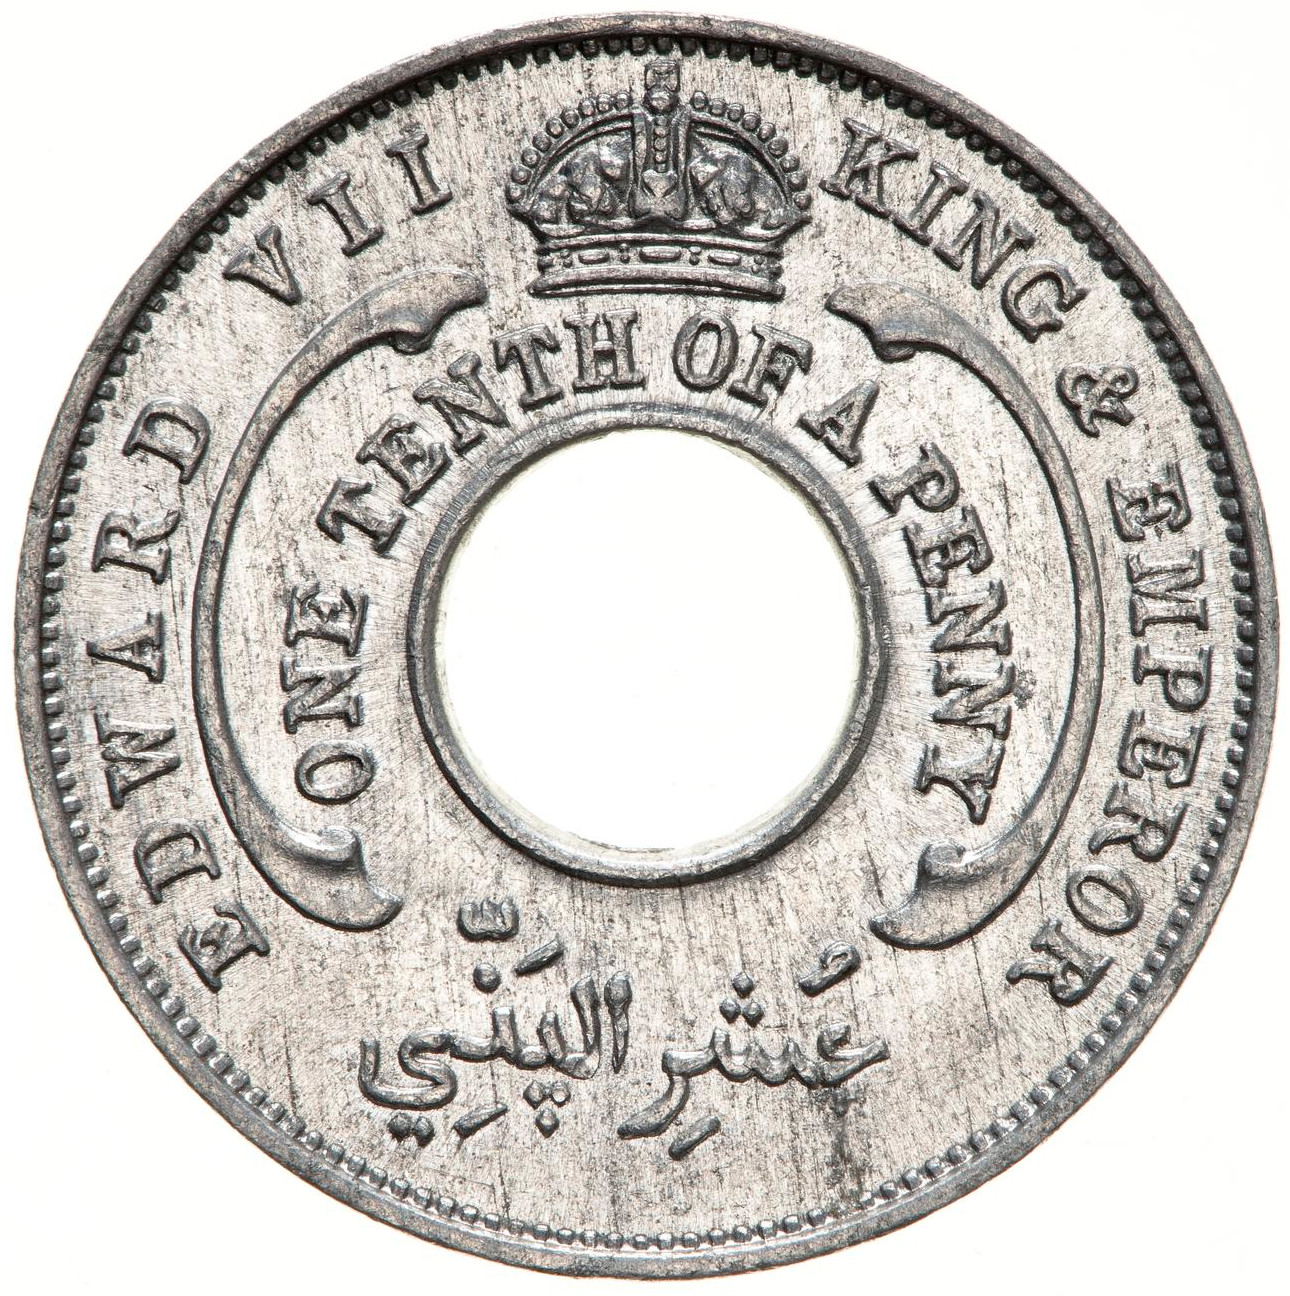 One-tenth Penny (Aluminium, Edward VII): Photo Coin - 1/10 Penny, British West Africa, 1908